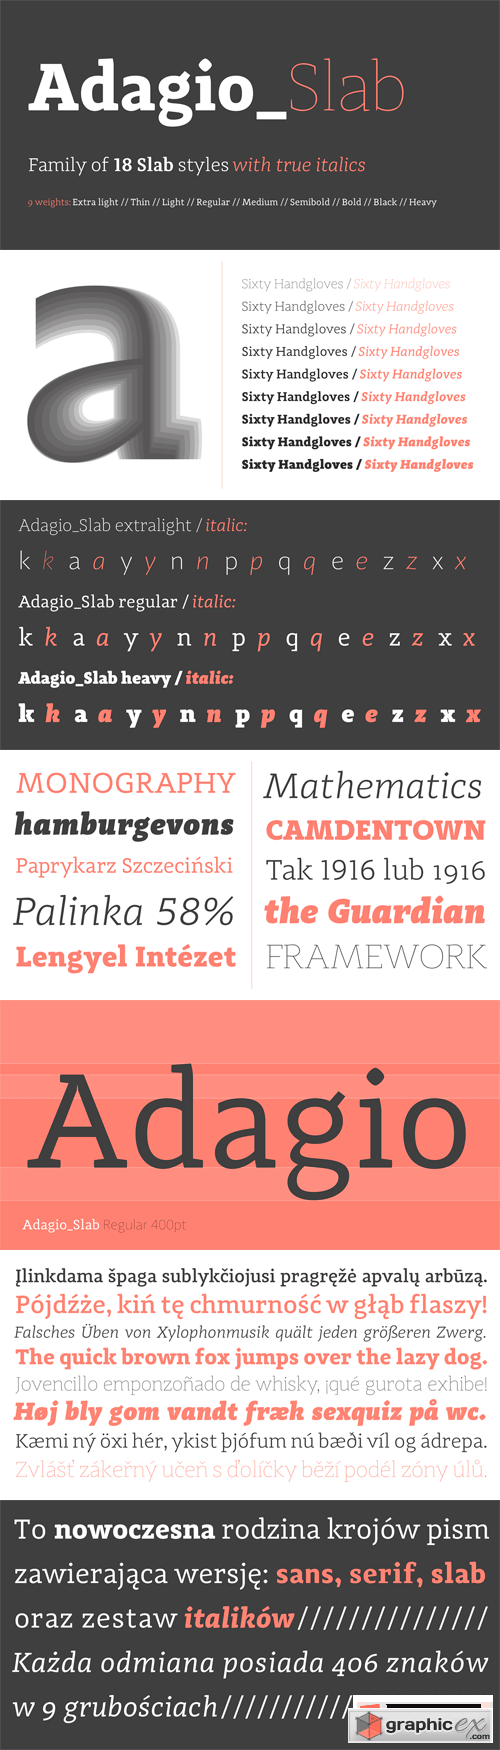 Adagio Slab Font Family - 18 Fonts for $270